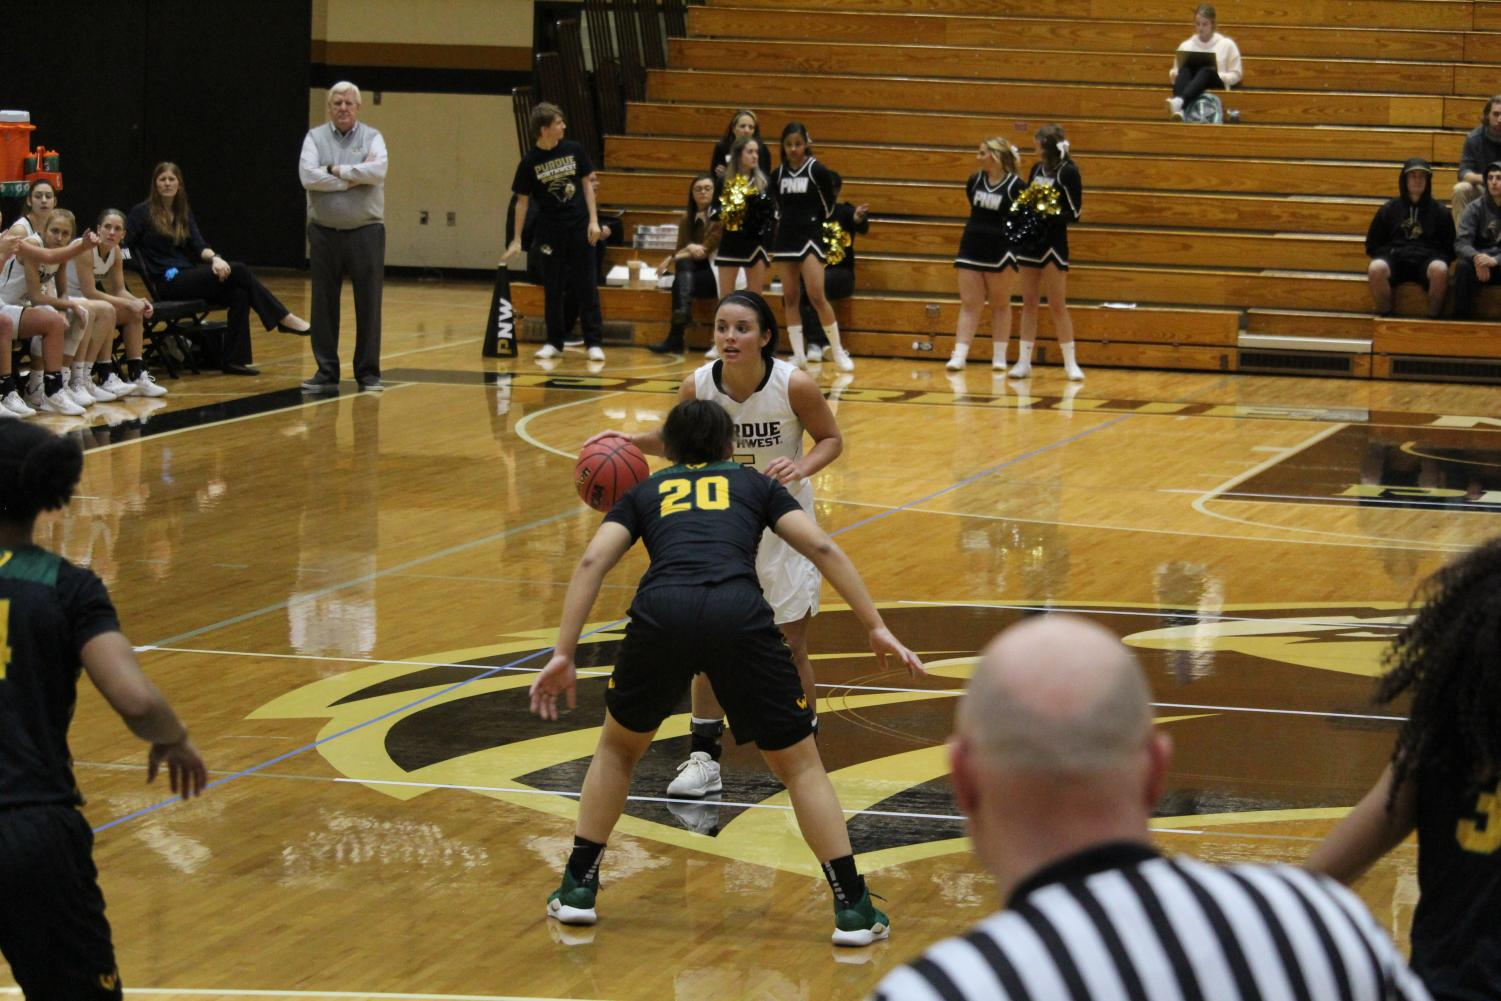 Tayler Vauters, sophomore guard, looks for an opening around India Hawkins, senior guard for Wayne state, in the home game on Jan. 20.